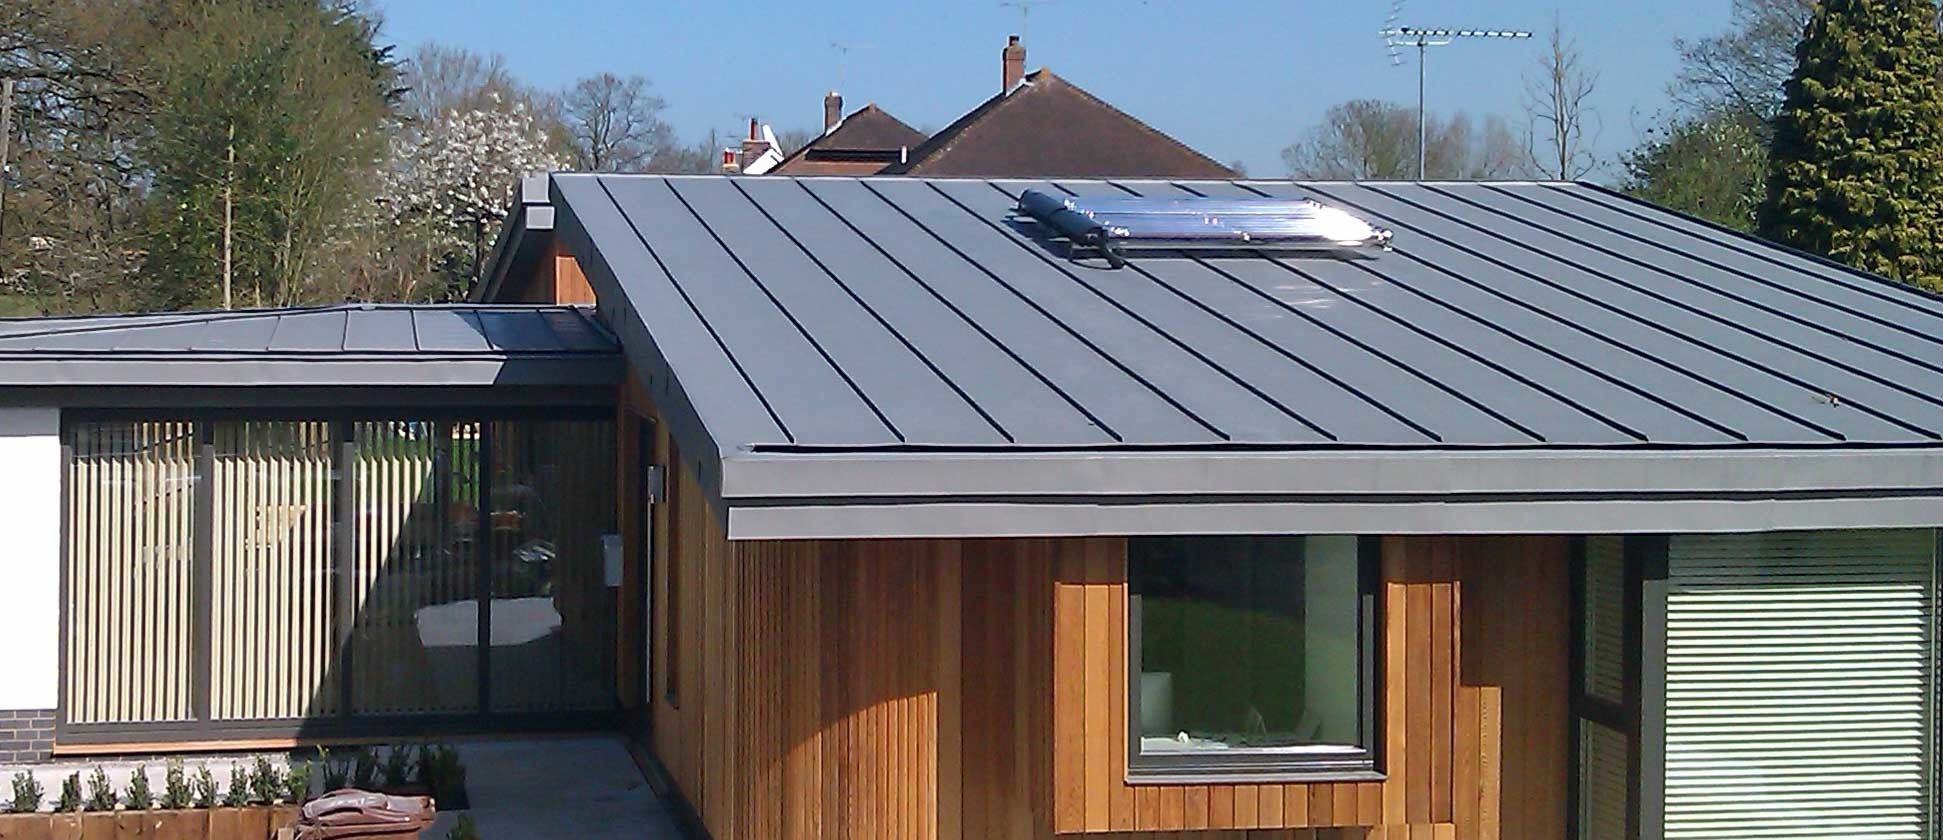 Vm Zinc Warm Roof Construction In Sissinghurst Kent